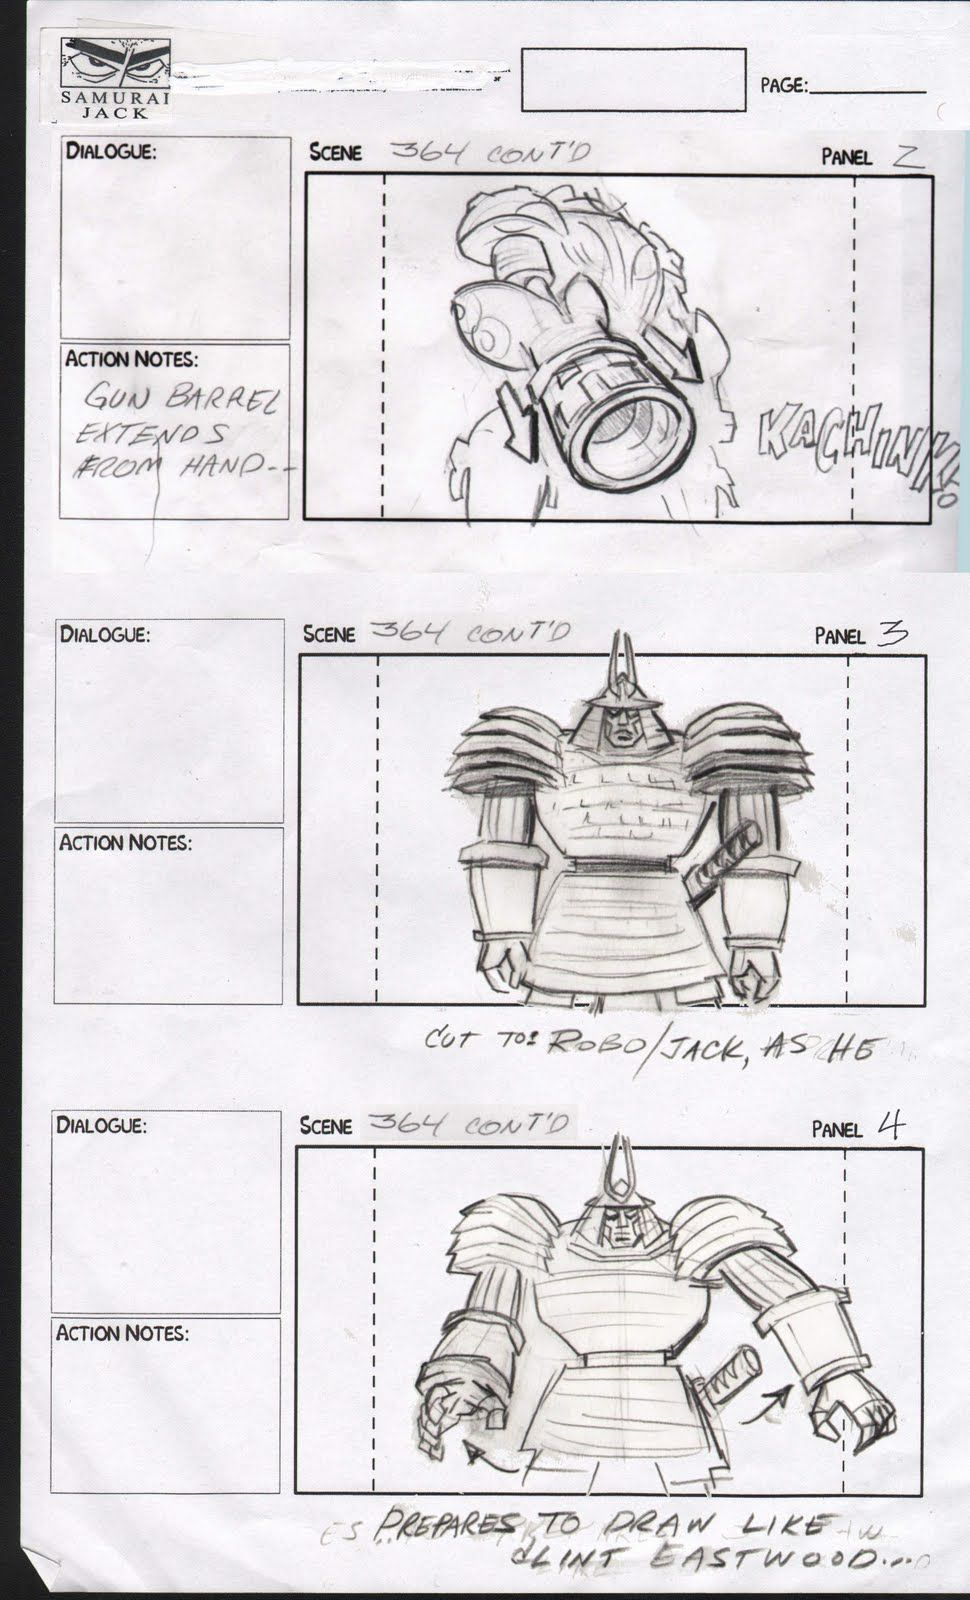 Jim Smith Cartoons Storyboards  Samurai Jack